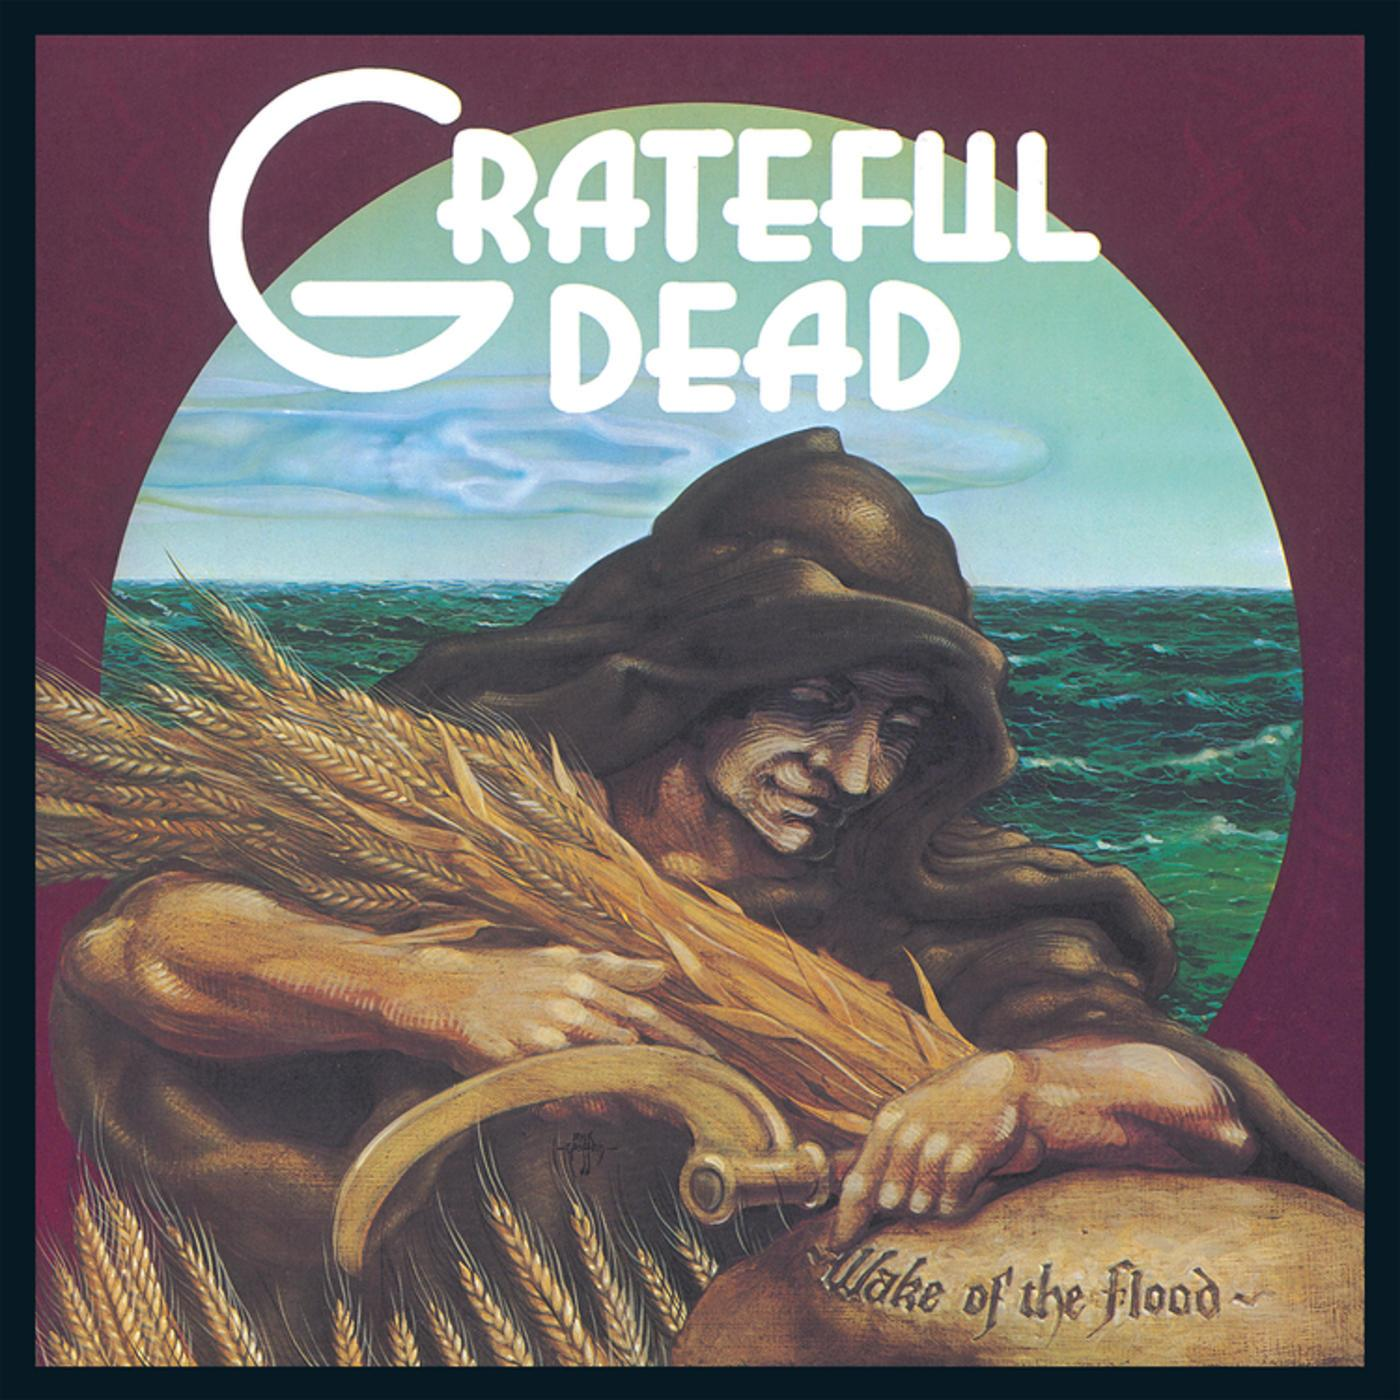 Grateful Dead - Wake of the Flood [LTD LP]